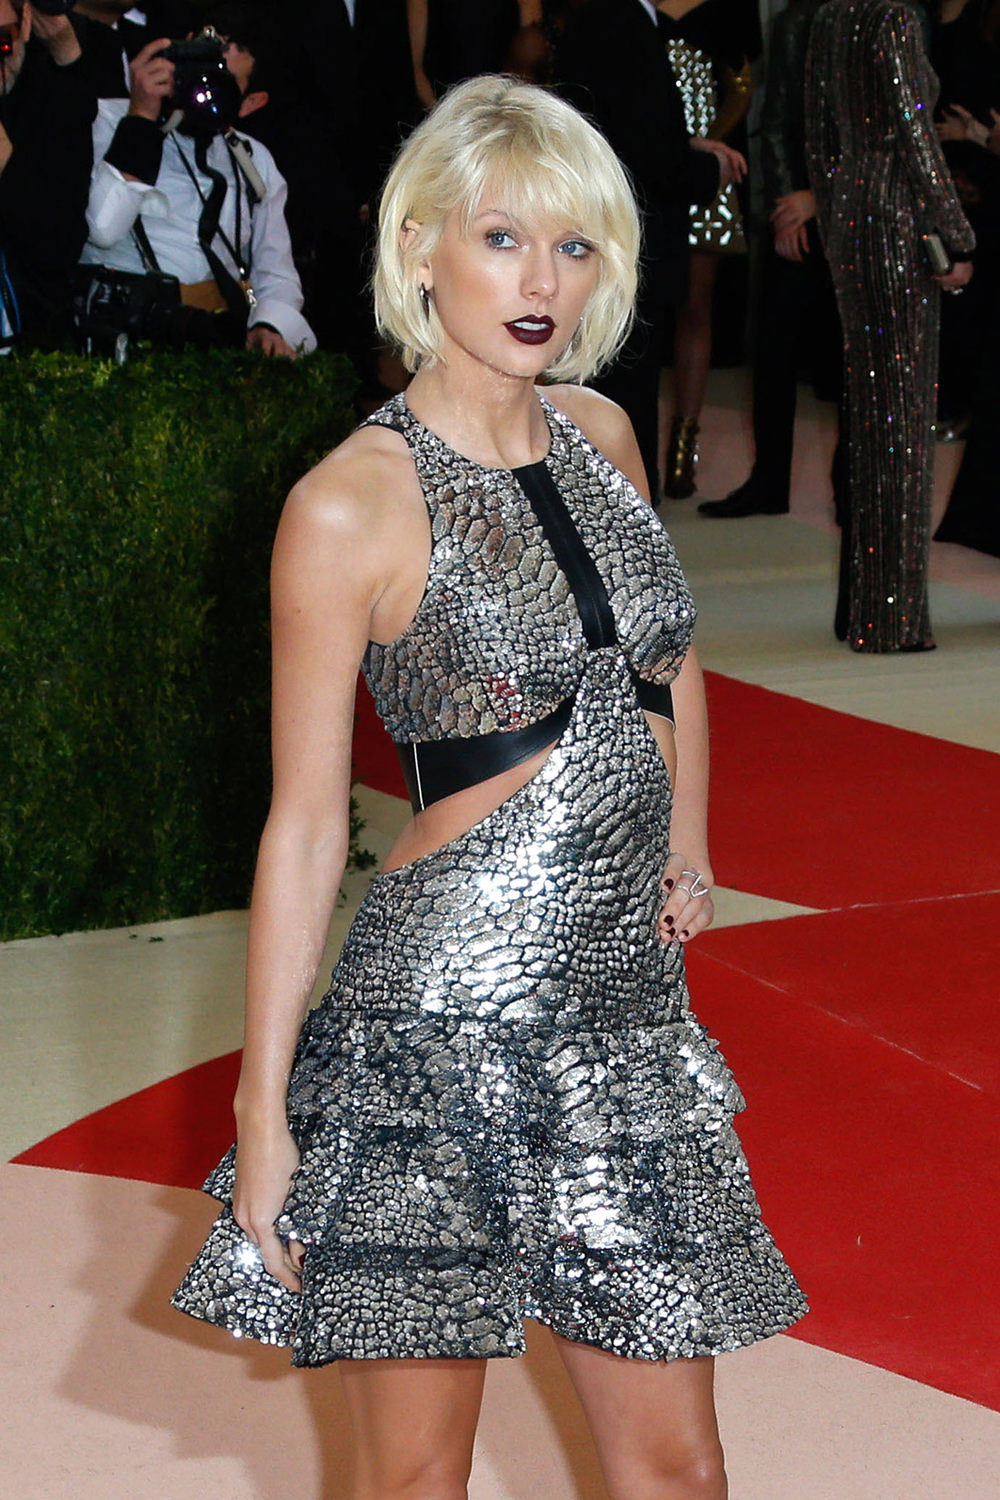 Taylor Swift 2009 Red Carpet